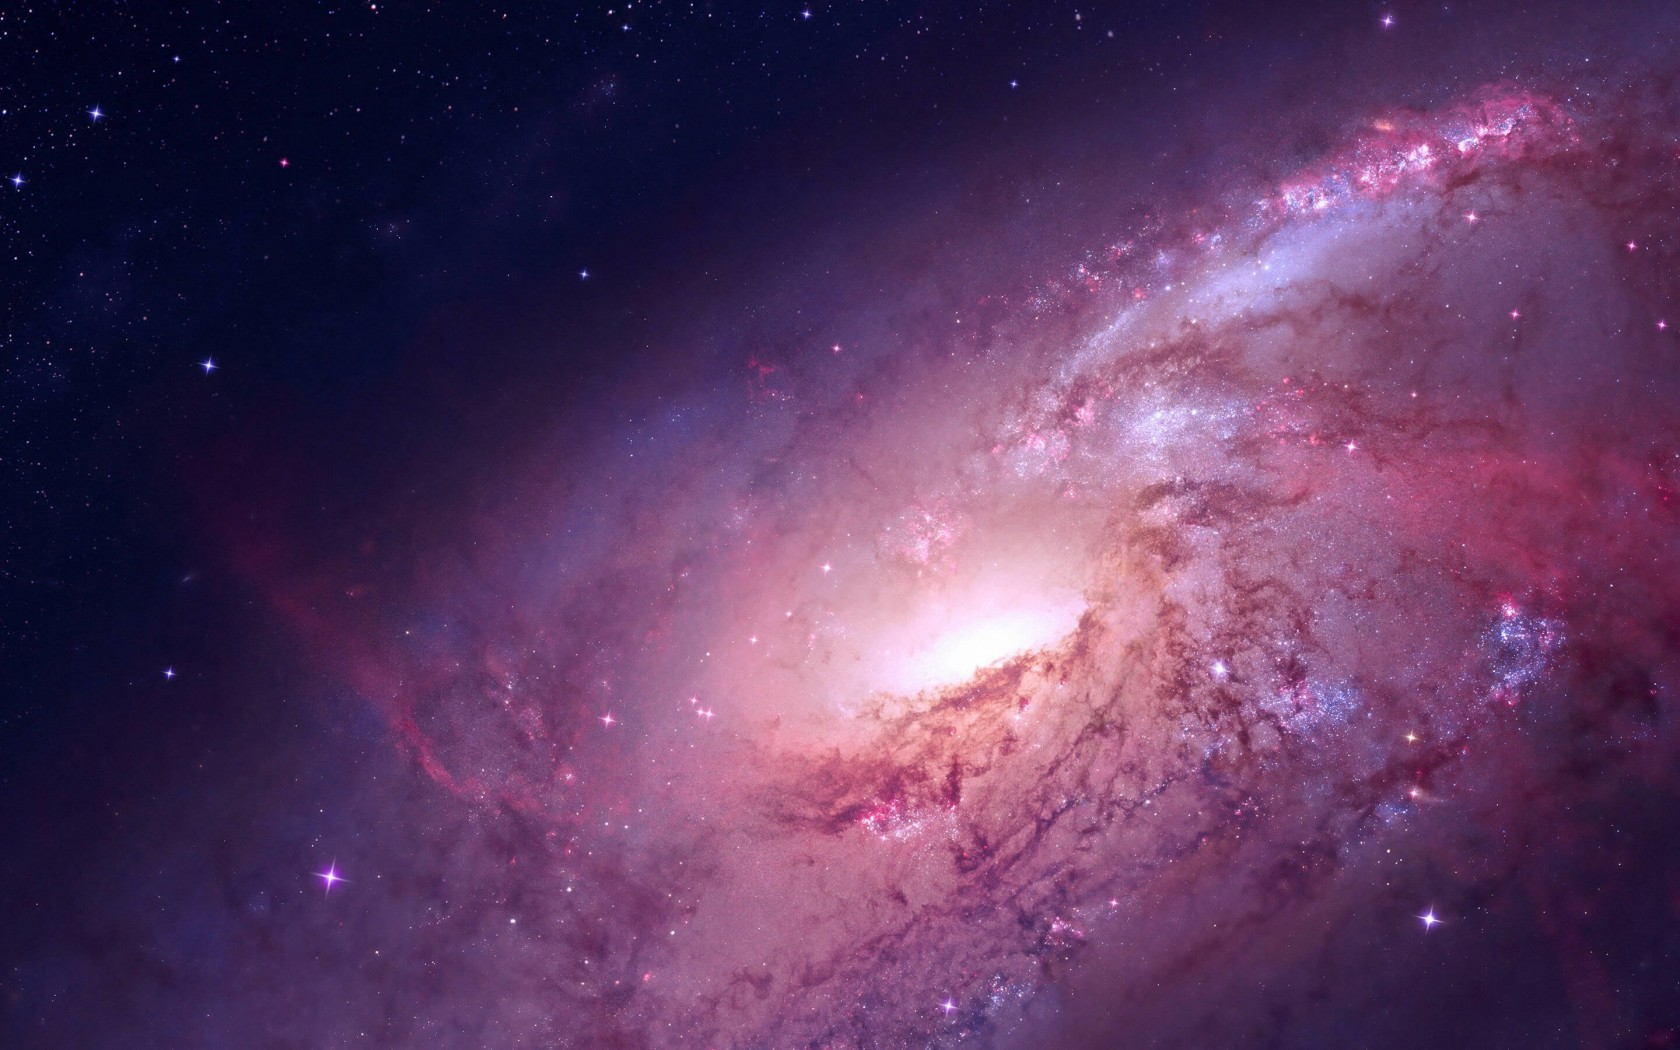 Galaxy M106 Wallpaper for Desktop 1680x1050